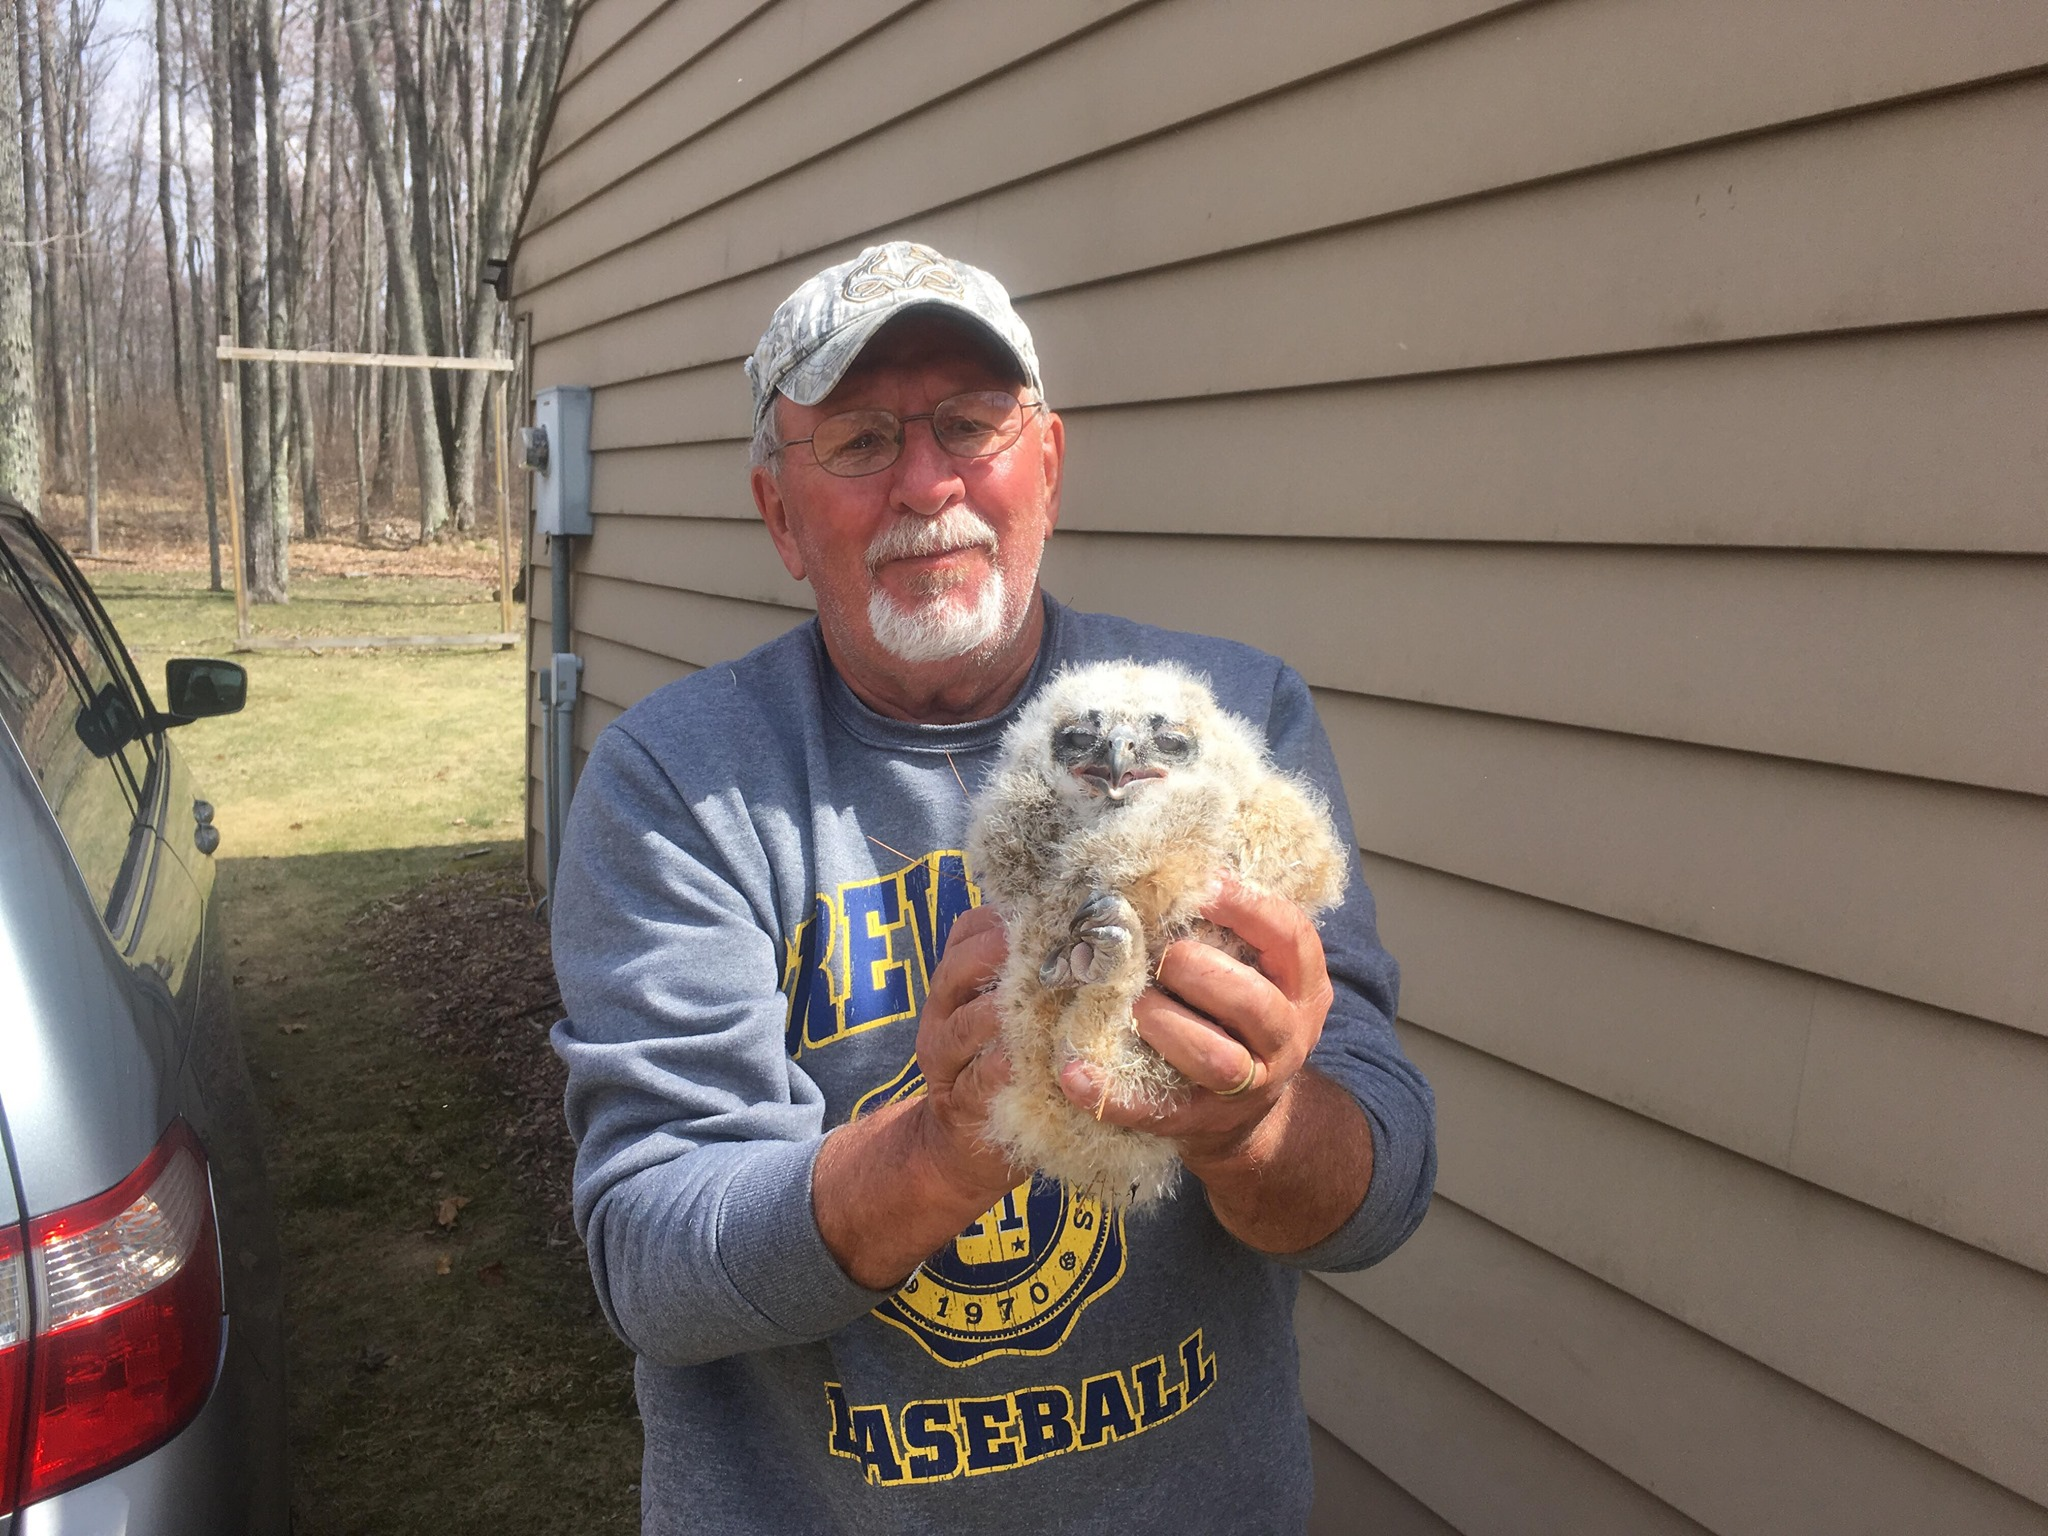 Our  thanks to the kind landowner that found the owl, and with the advice of  wildlife rehabilitators ,tried to reunite the parents and owlet. When  it became obvious the chick was unable to stand and was losing ground,  rescued it one again and got help.